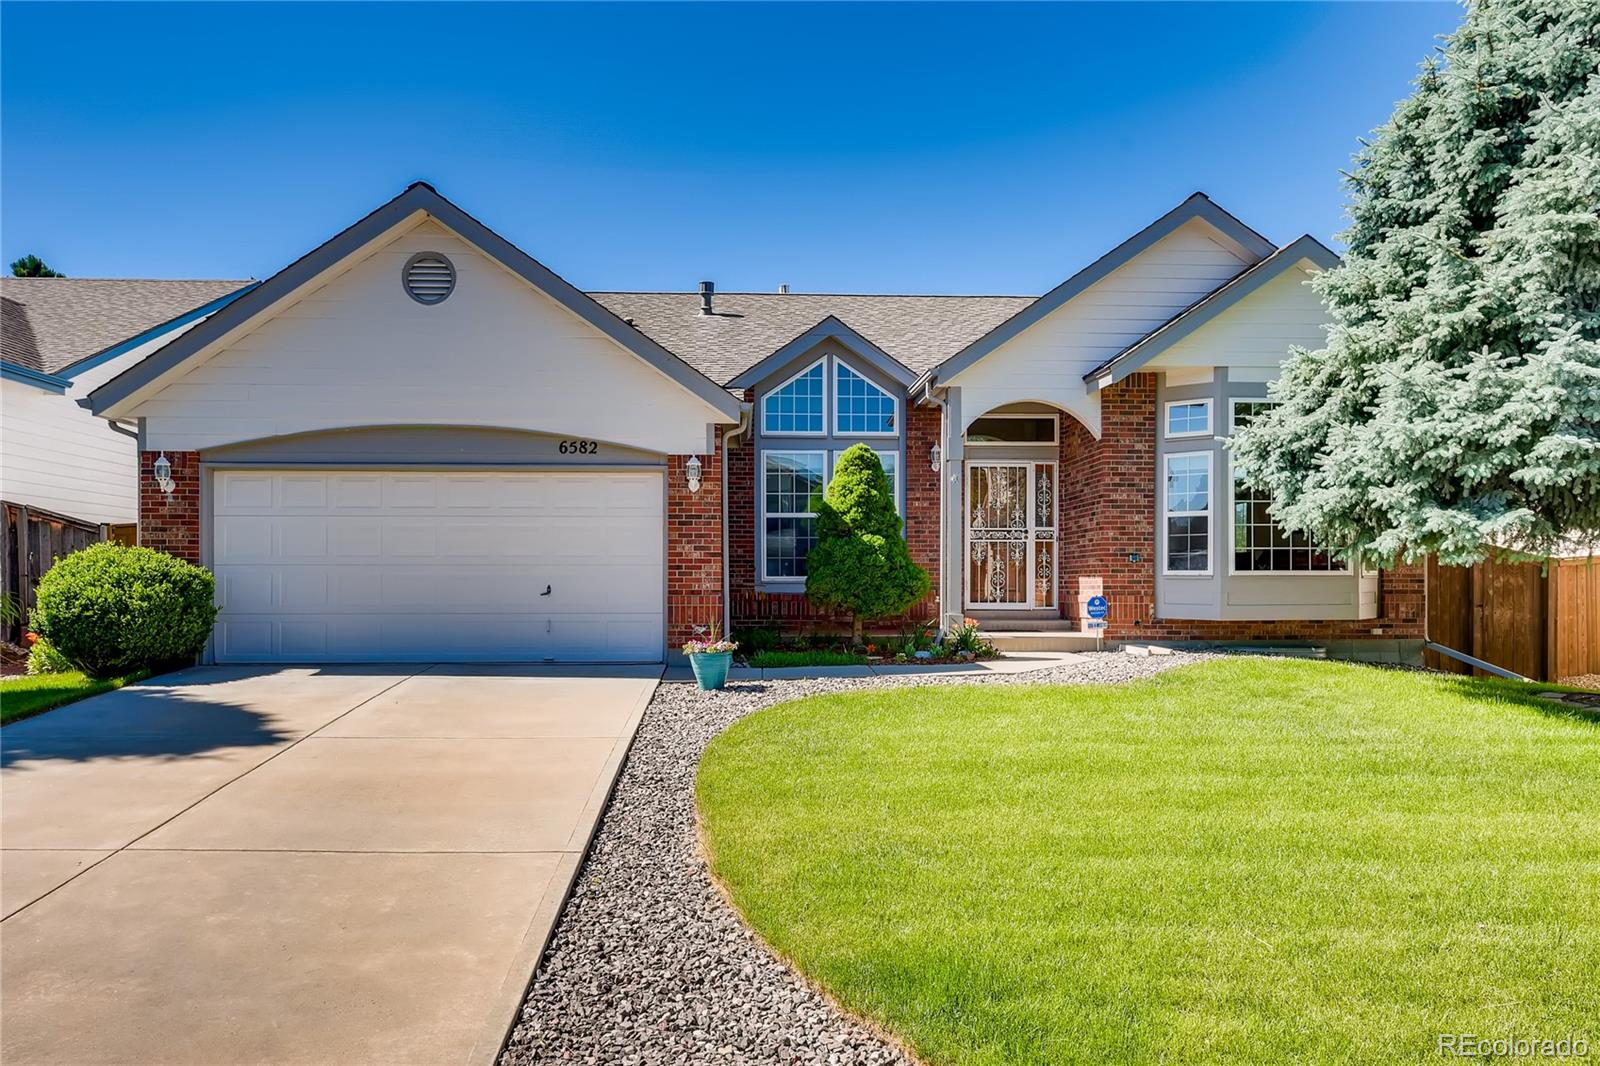 MLS# 9535910 - 2 - 6582 Jackson Court, Highlands Ranch, CO 80130